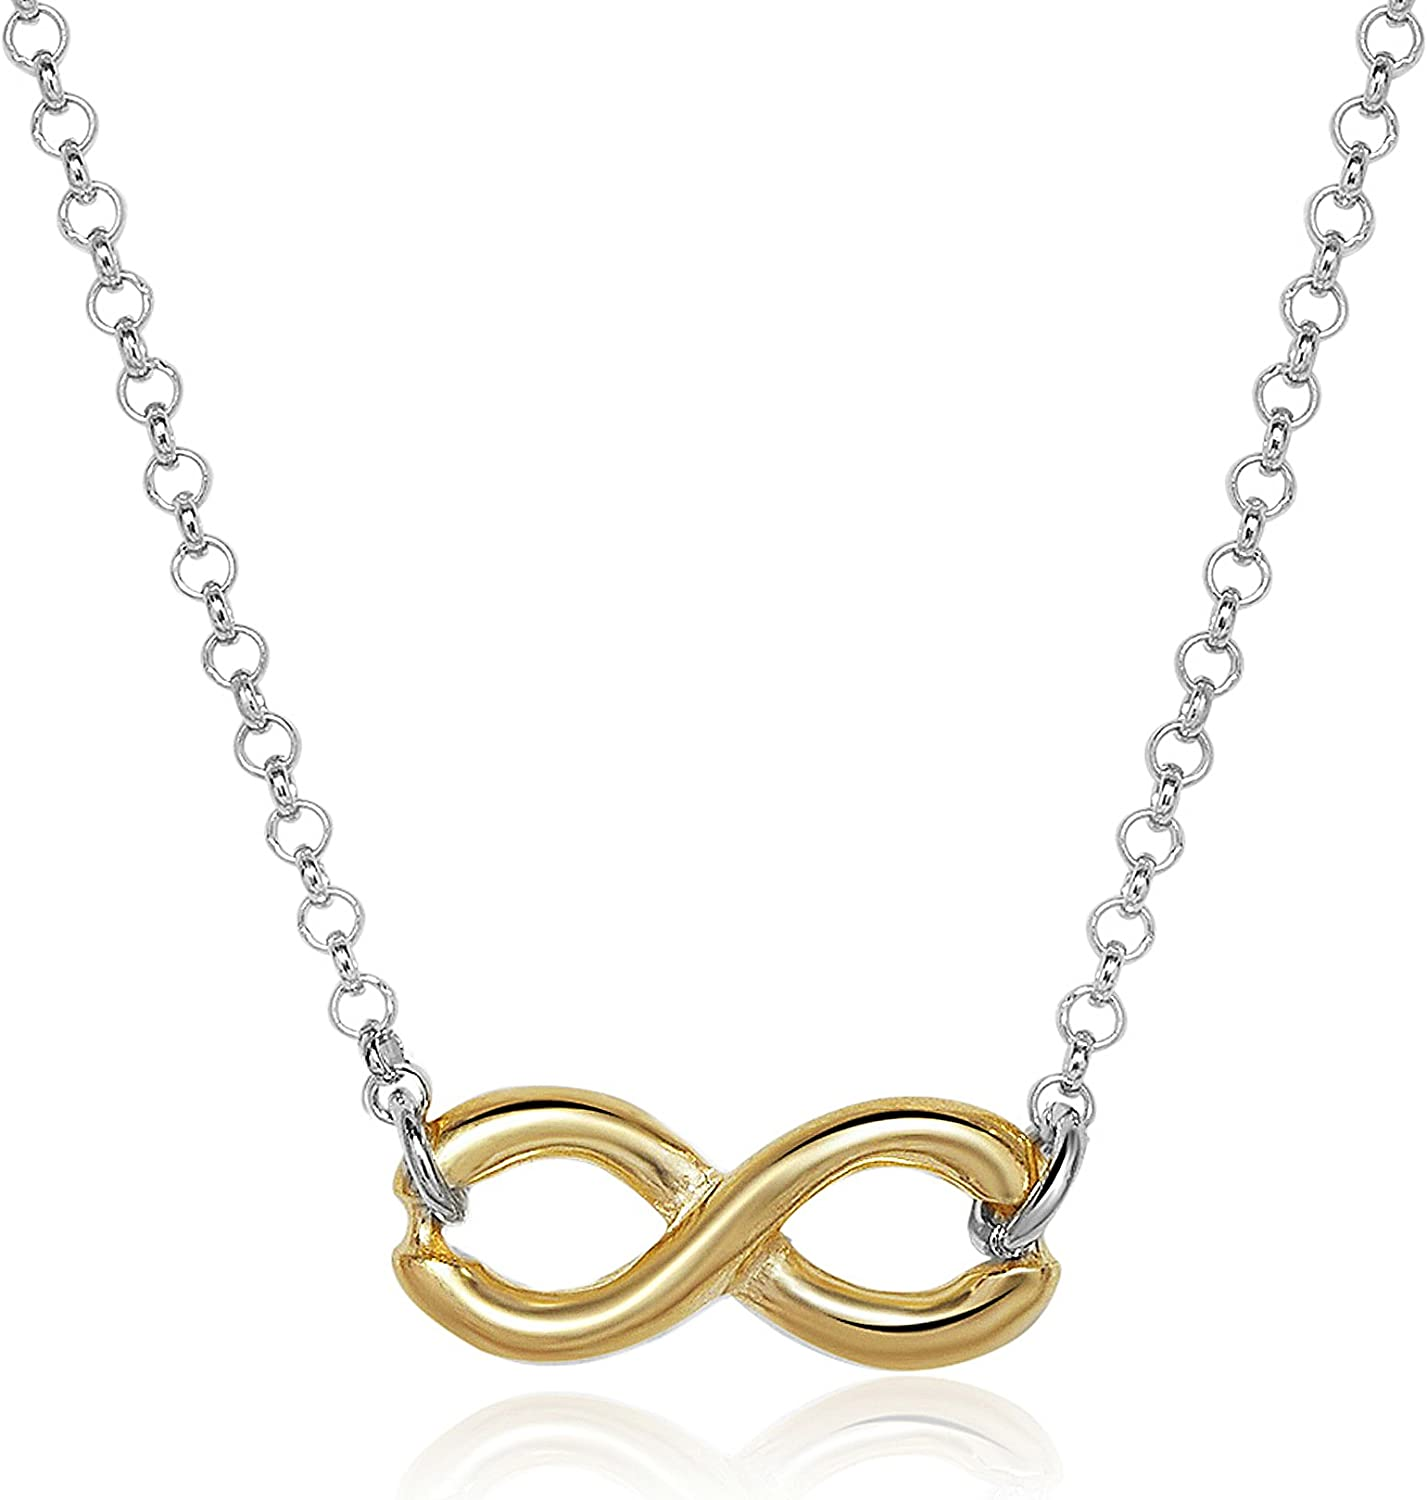 RD Jewels Sterling Silver Infinity Necklace Choose Your Metal Color